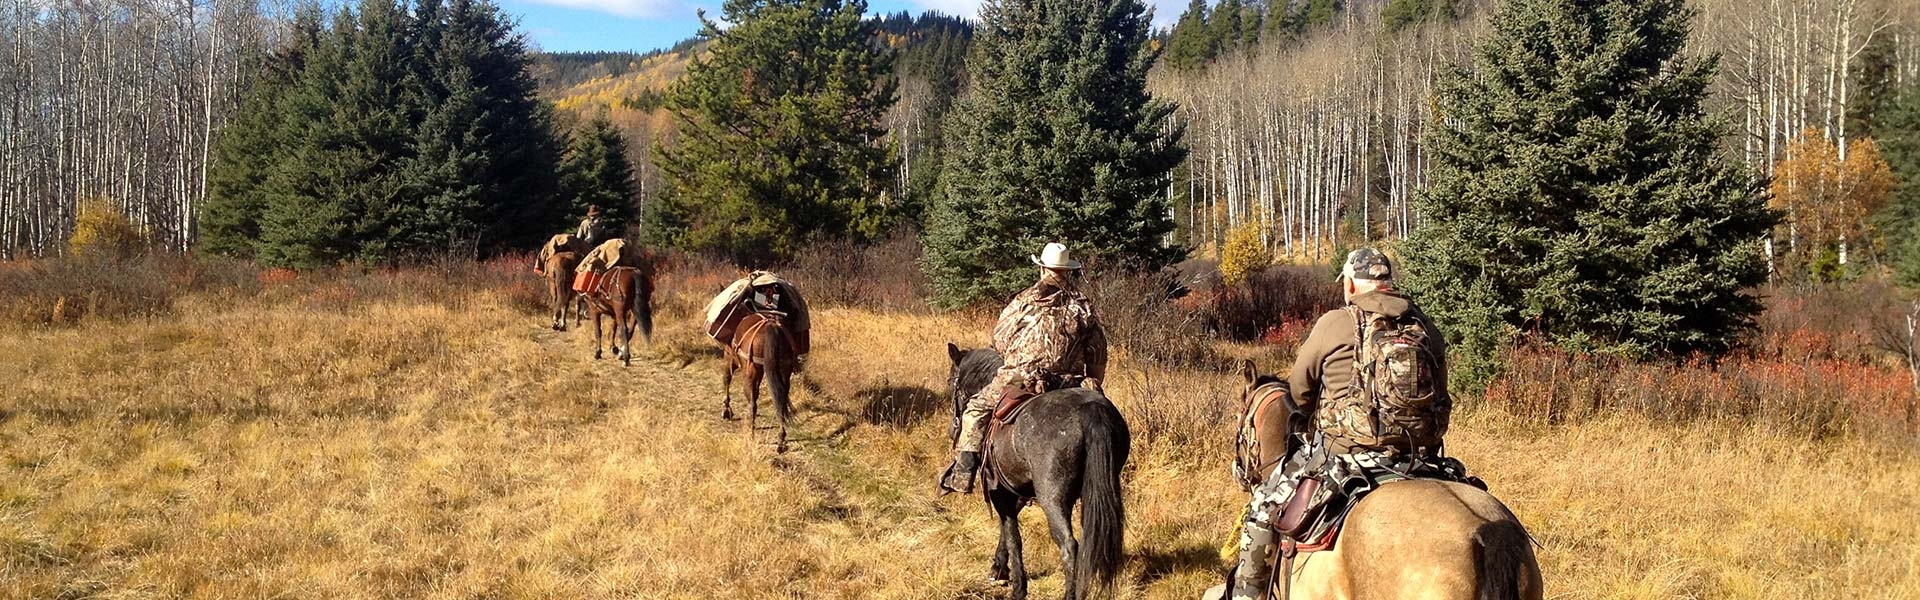 Contact Willow Creek Outfitters